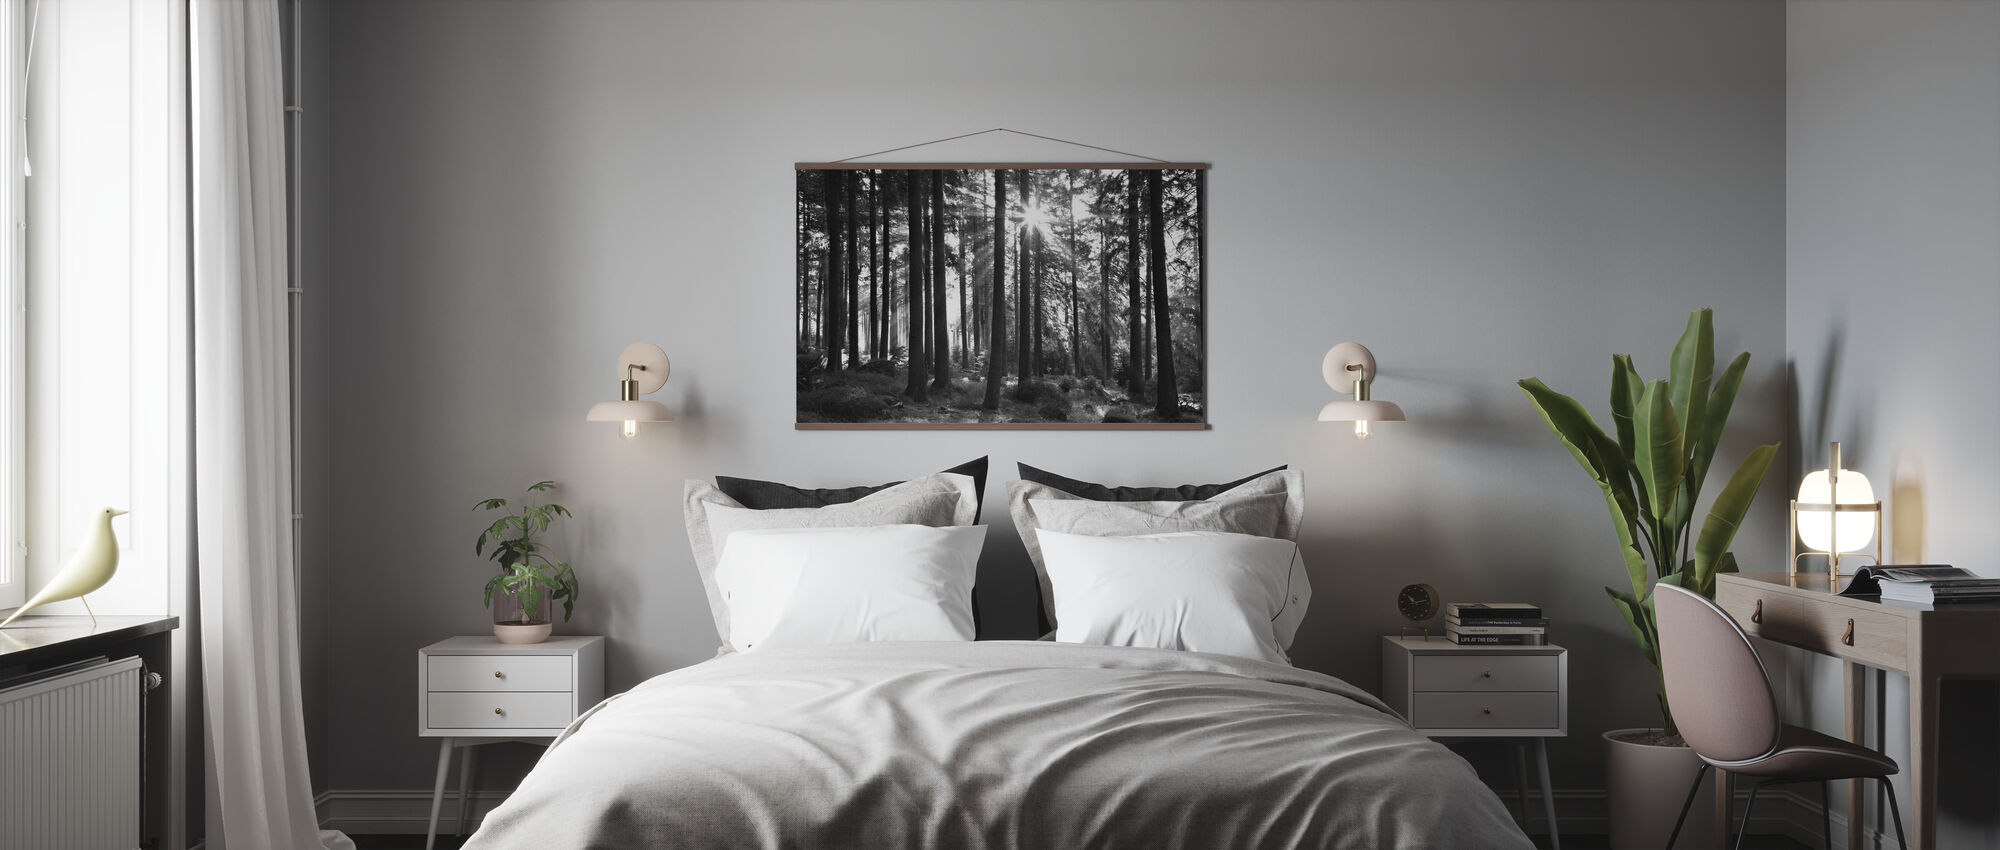 Sunbeam through Trees - Poster - Bedroom